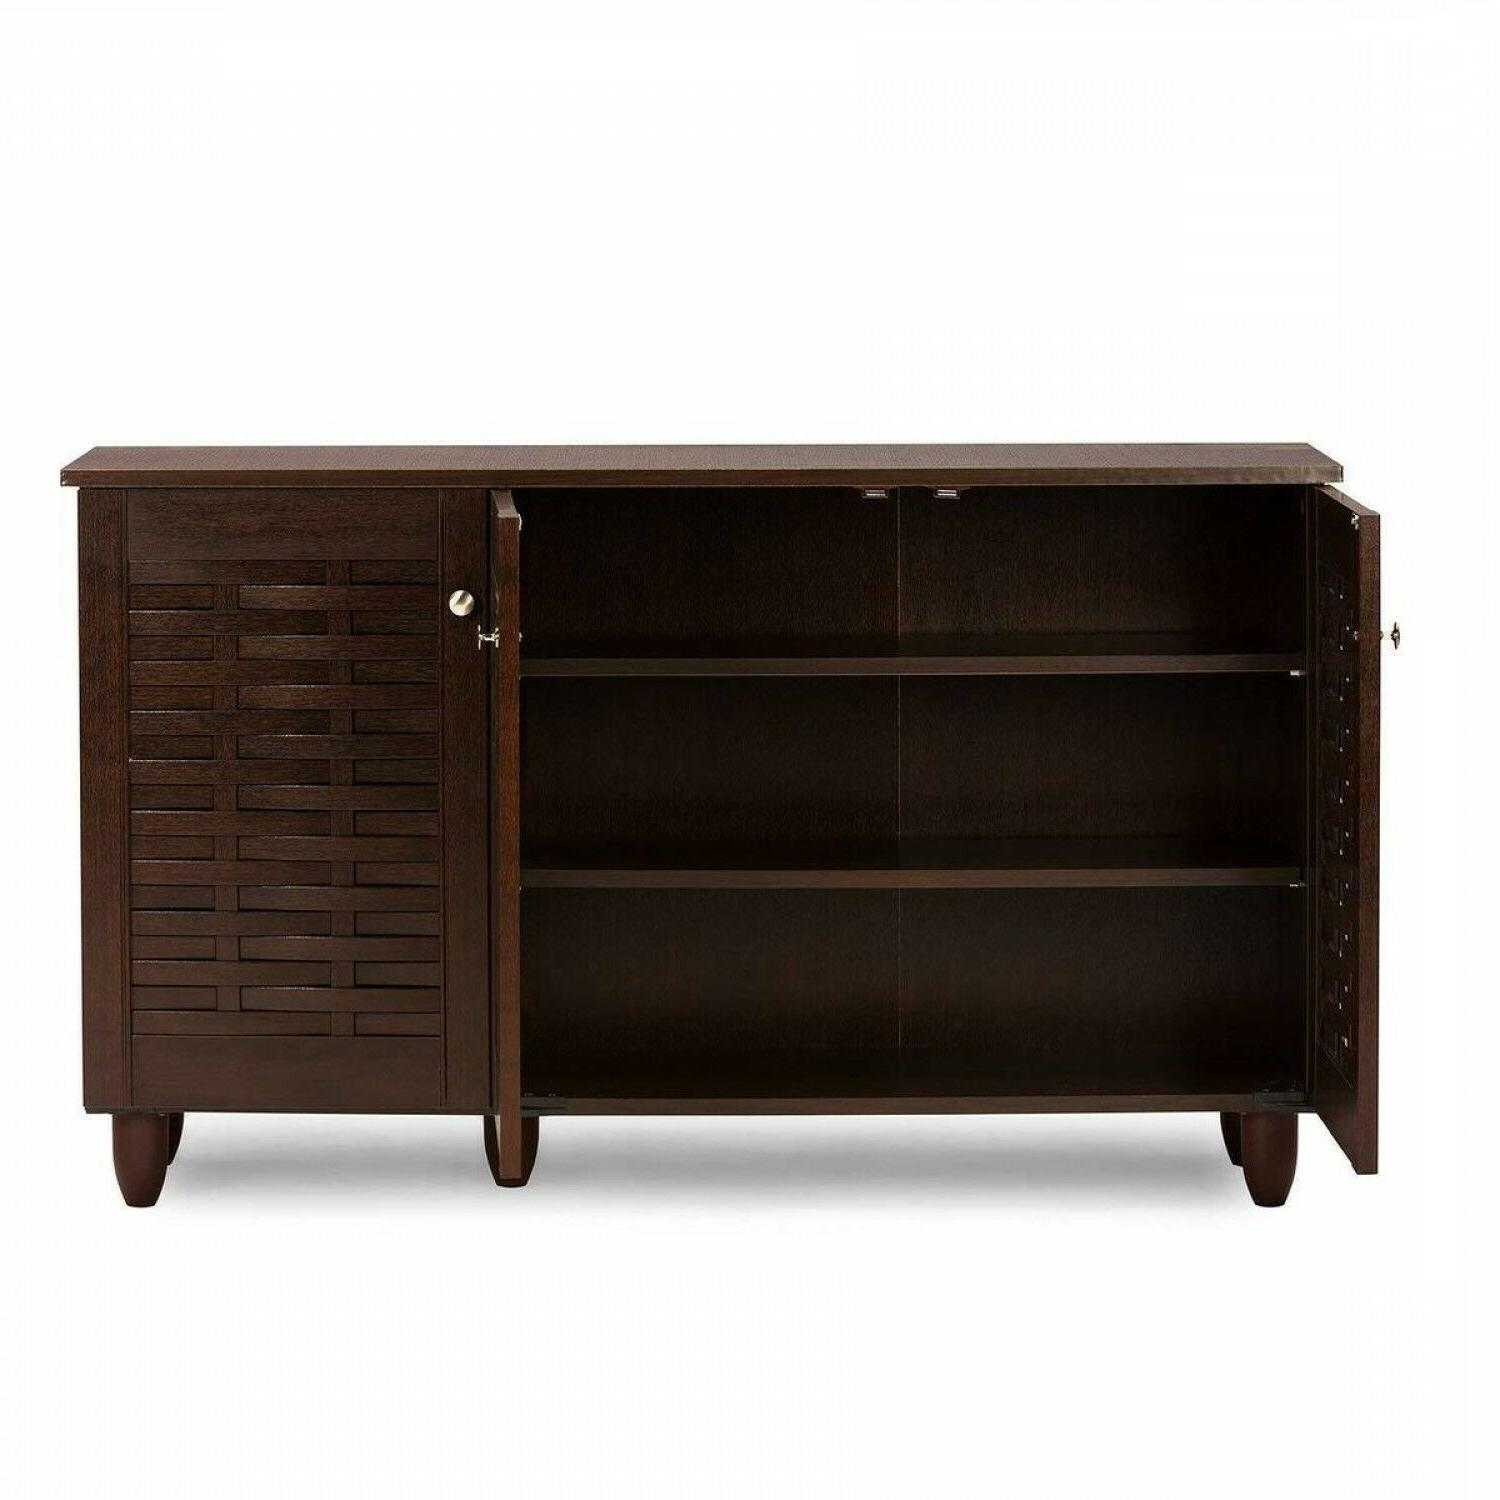 Entryway Cabinet Hallway Storage Living Room TV Stand